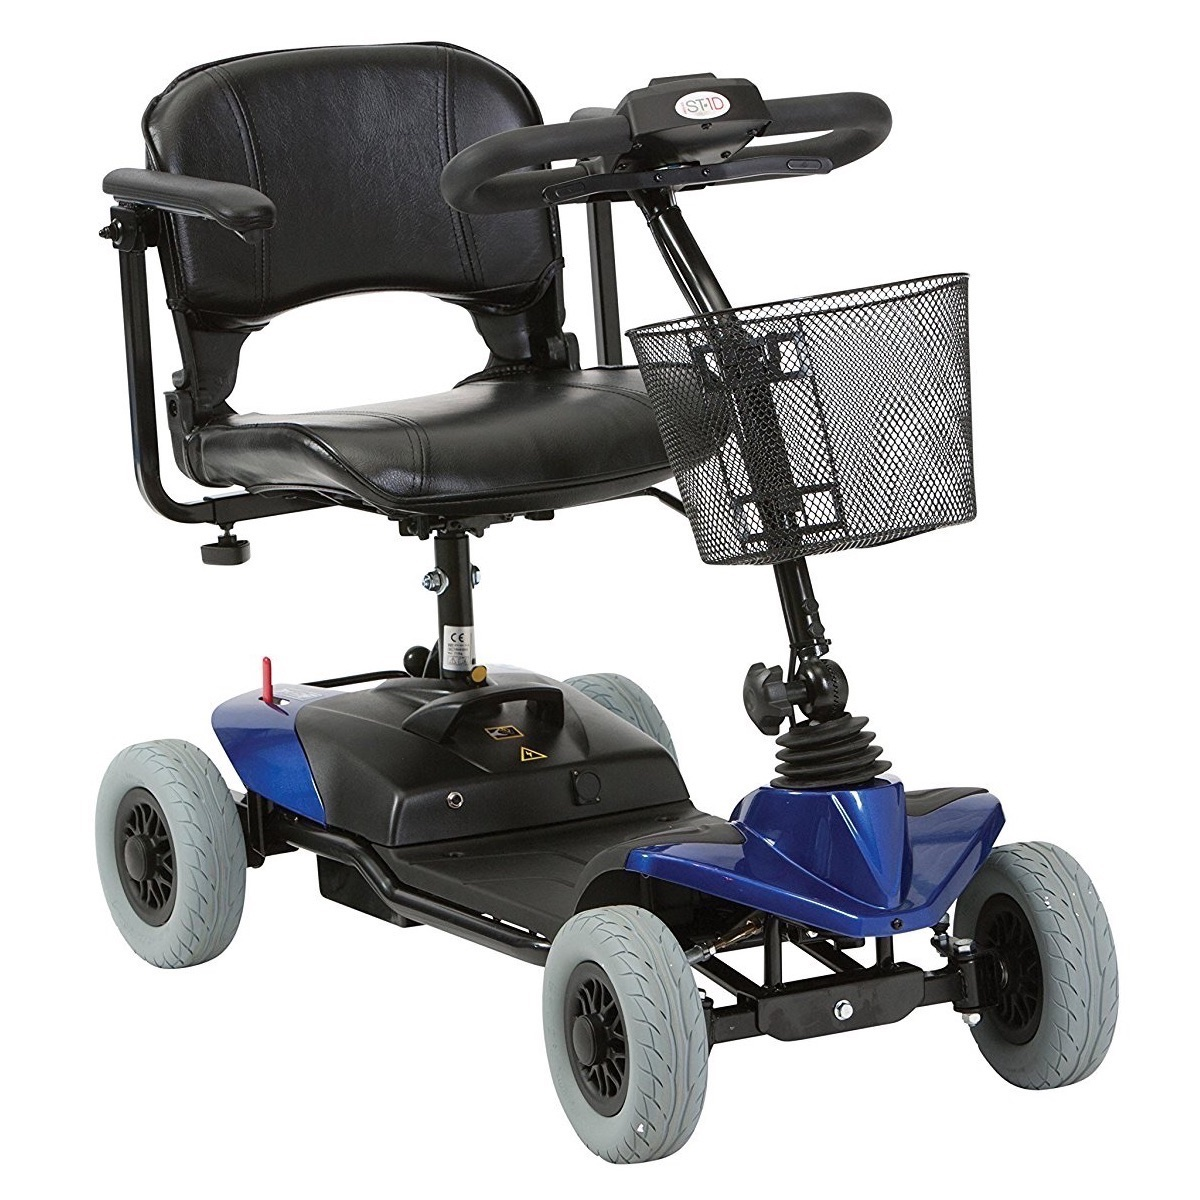 Mobility Scooter - Drive Medical - ST1. On Sale and FREE DELIVERY. While Stocks Last.